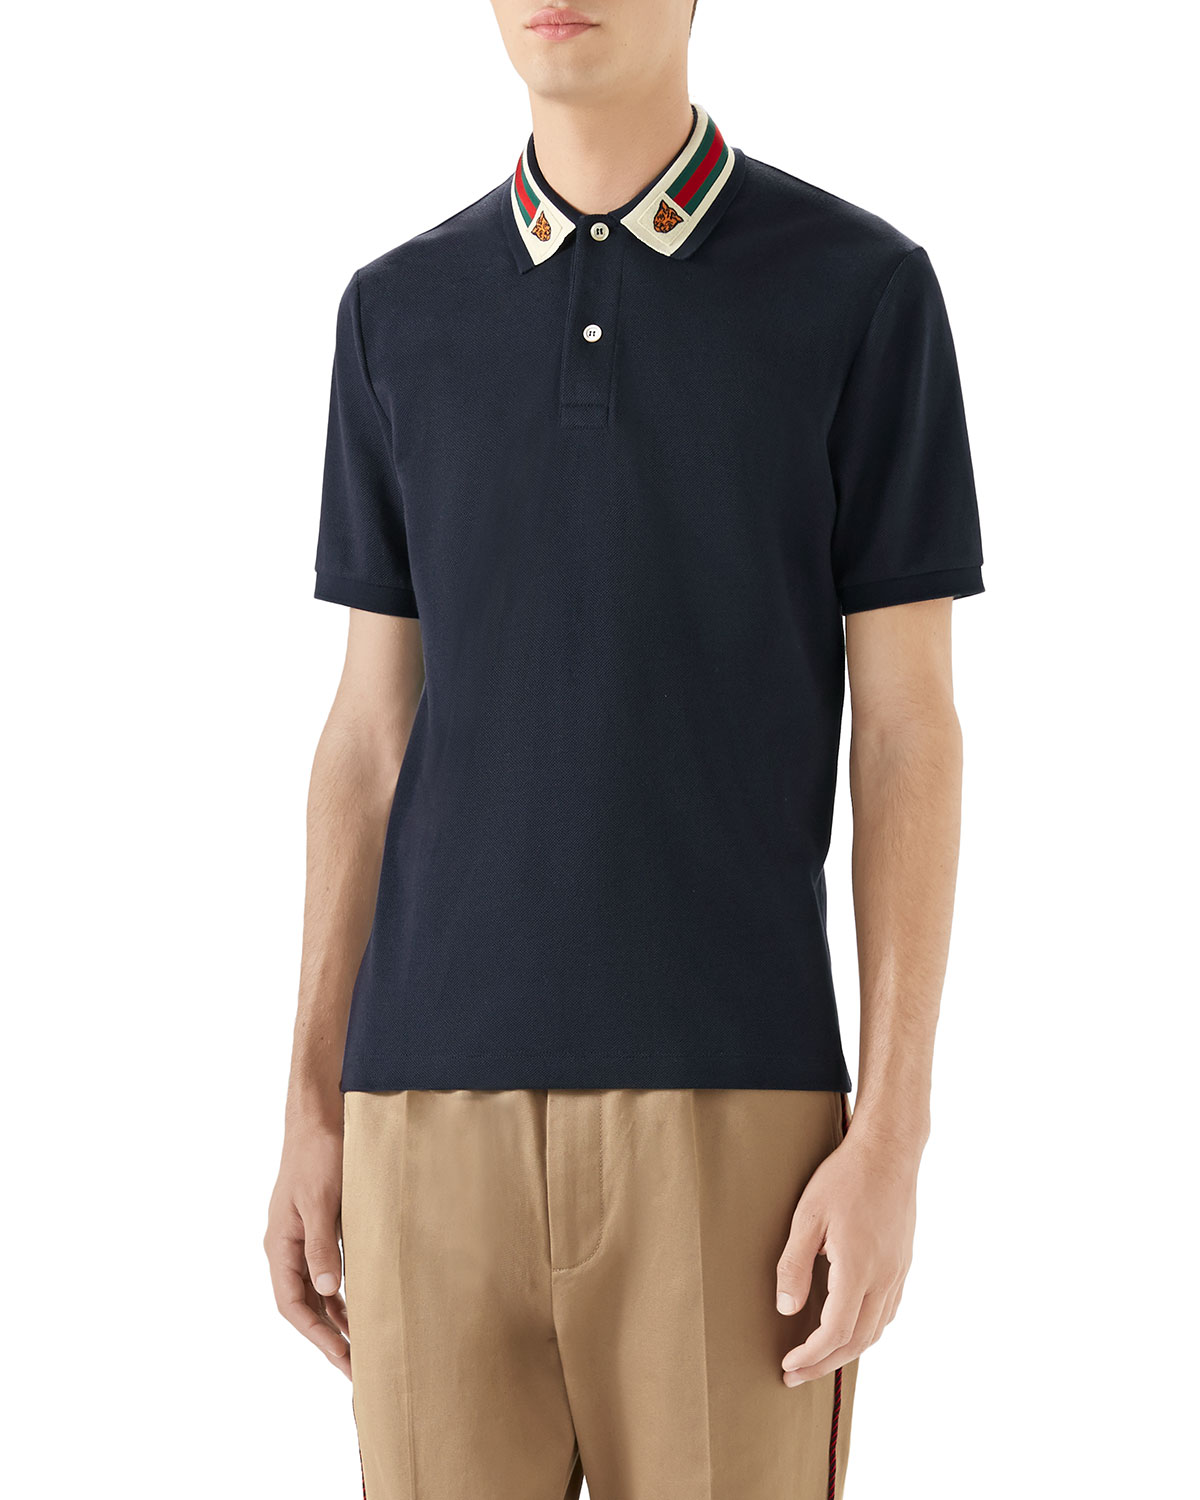 c366c96c416 Gucci Men s Pique Polo Shirt w  Web Collar